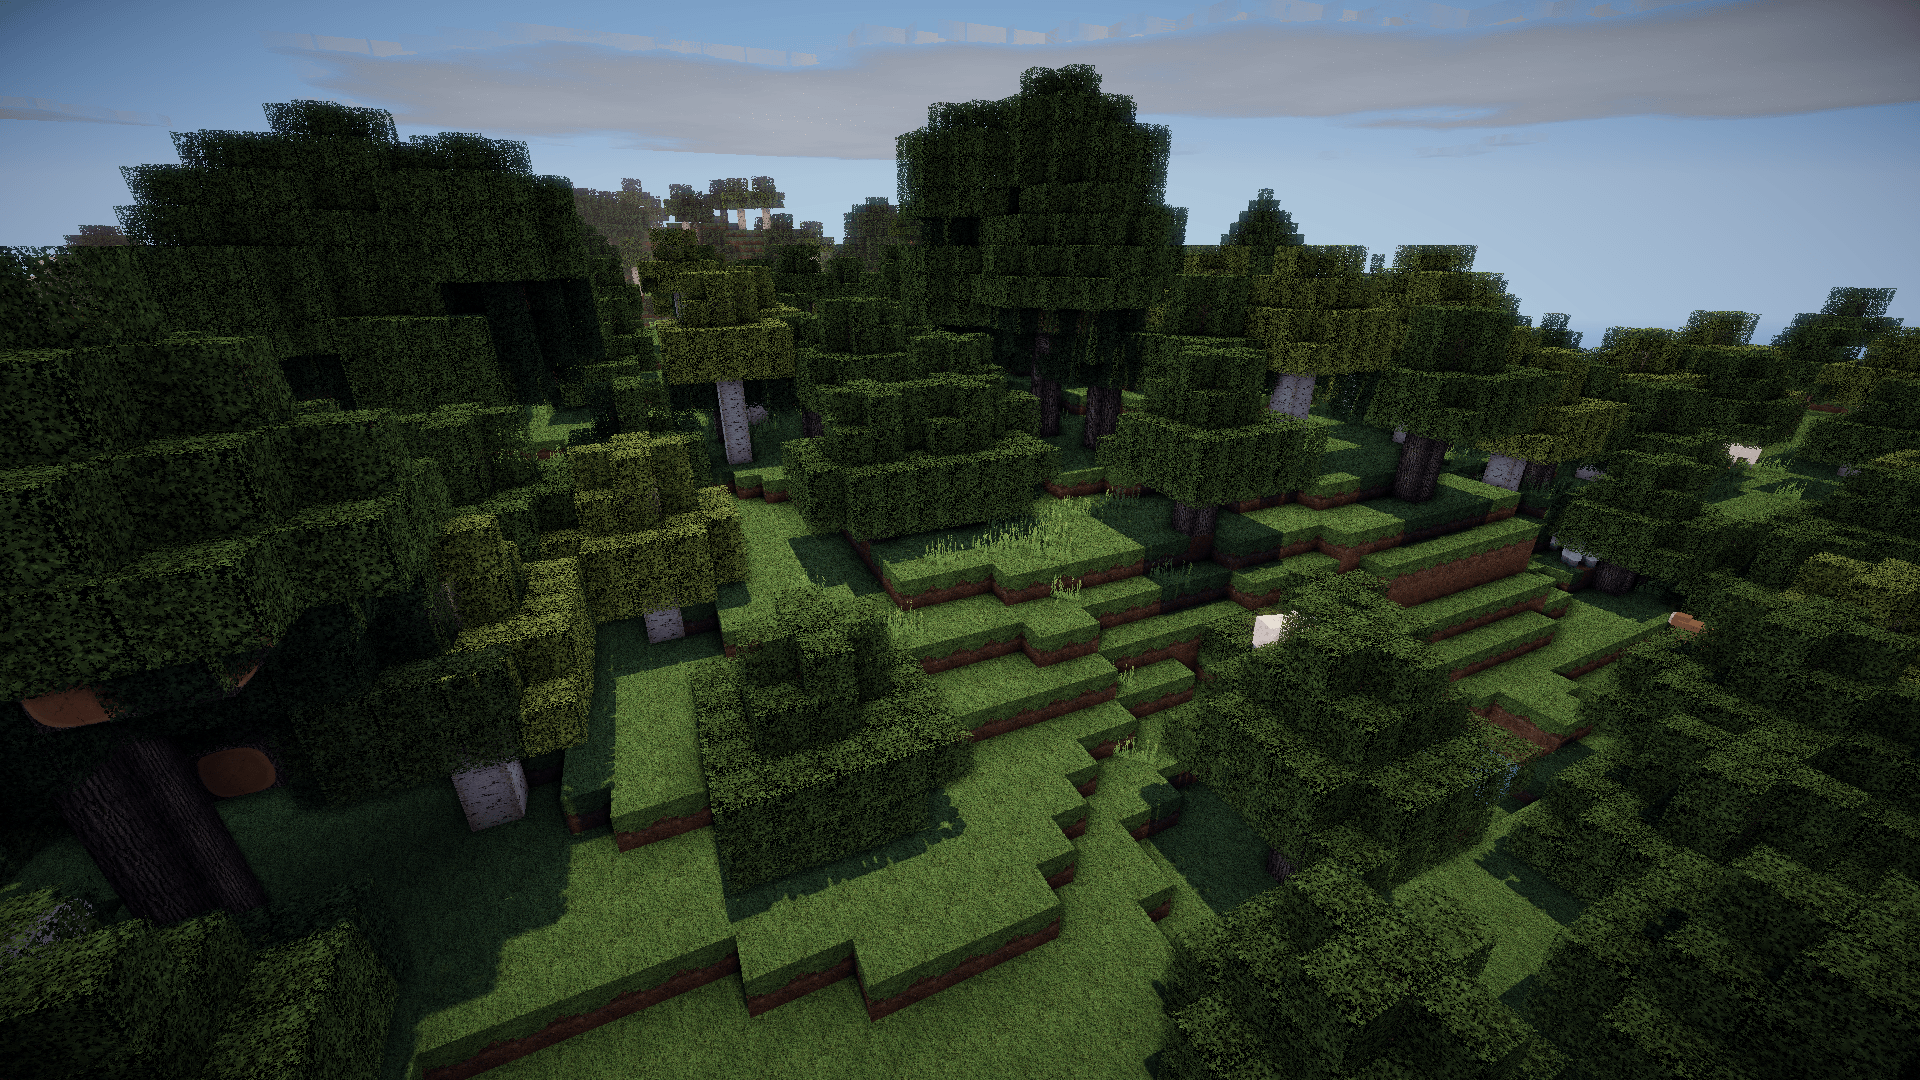 Lb photo realism reload MCPatcher LB PhotoRealism Reload! Parrots! - Minecraft Forum